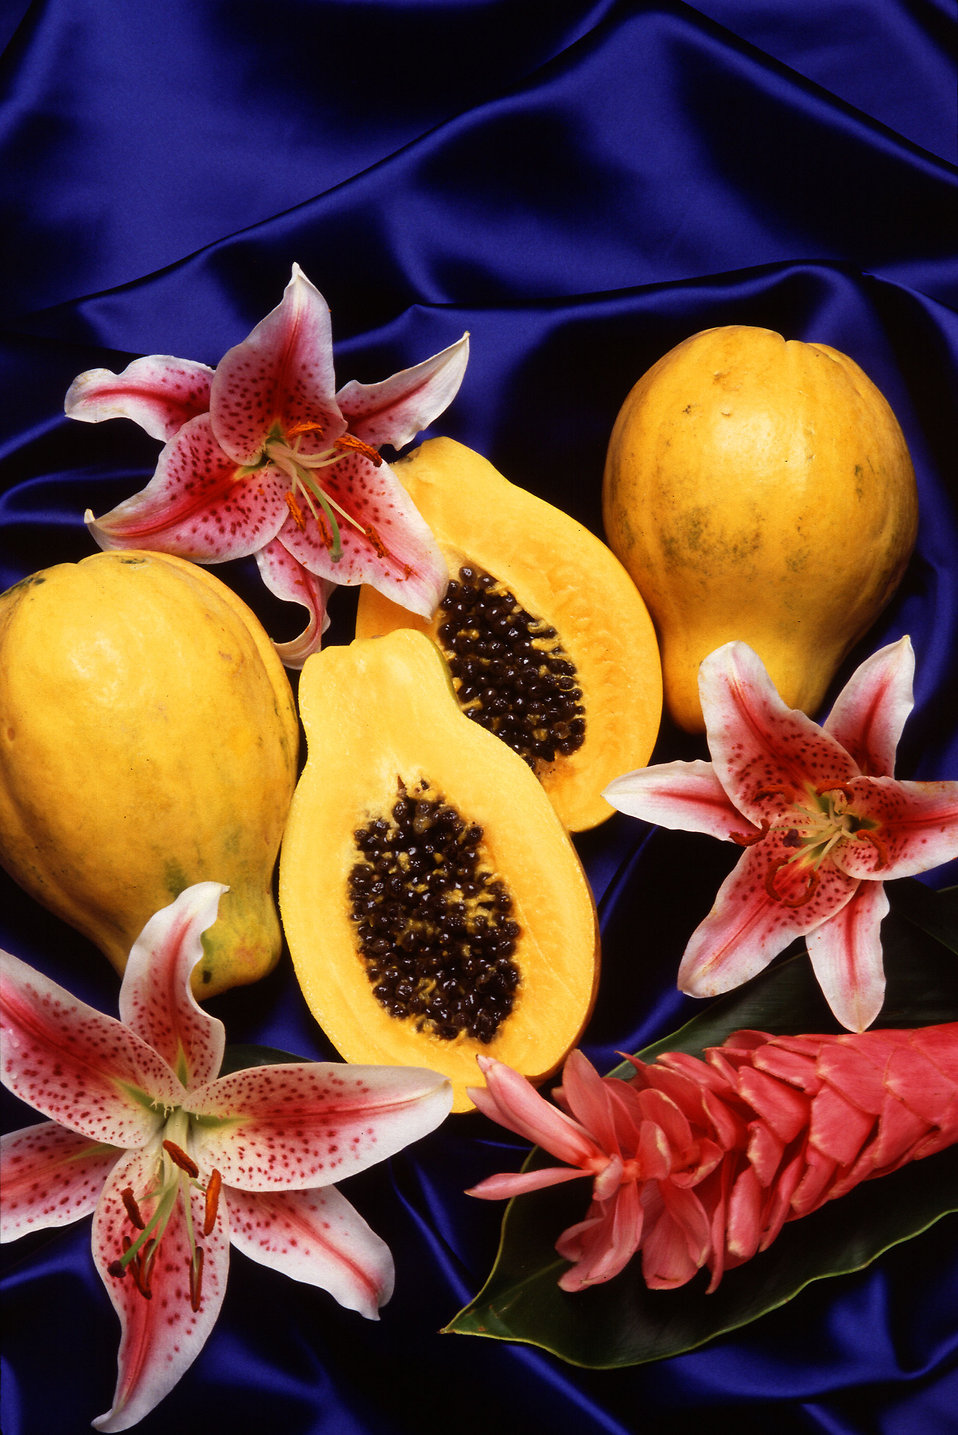 Hawaiian papayas (Carica papaya) displayed with pink flowers : Free Stock Photo